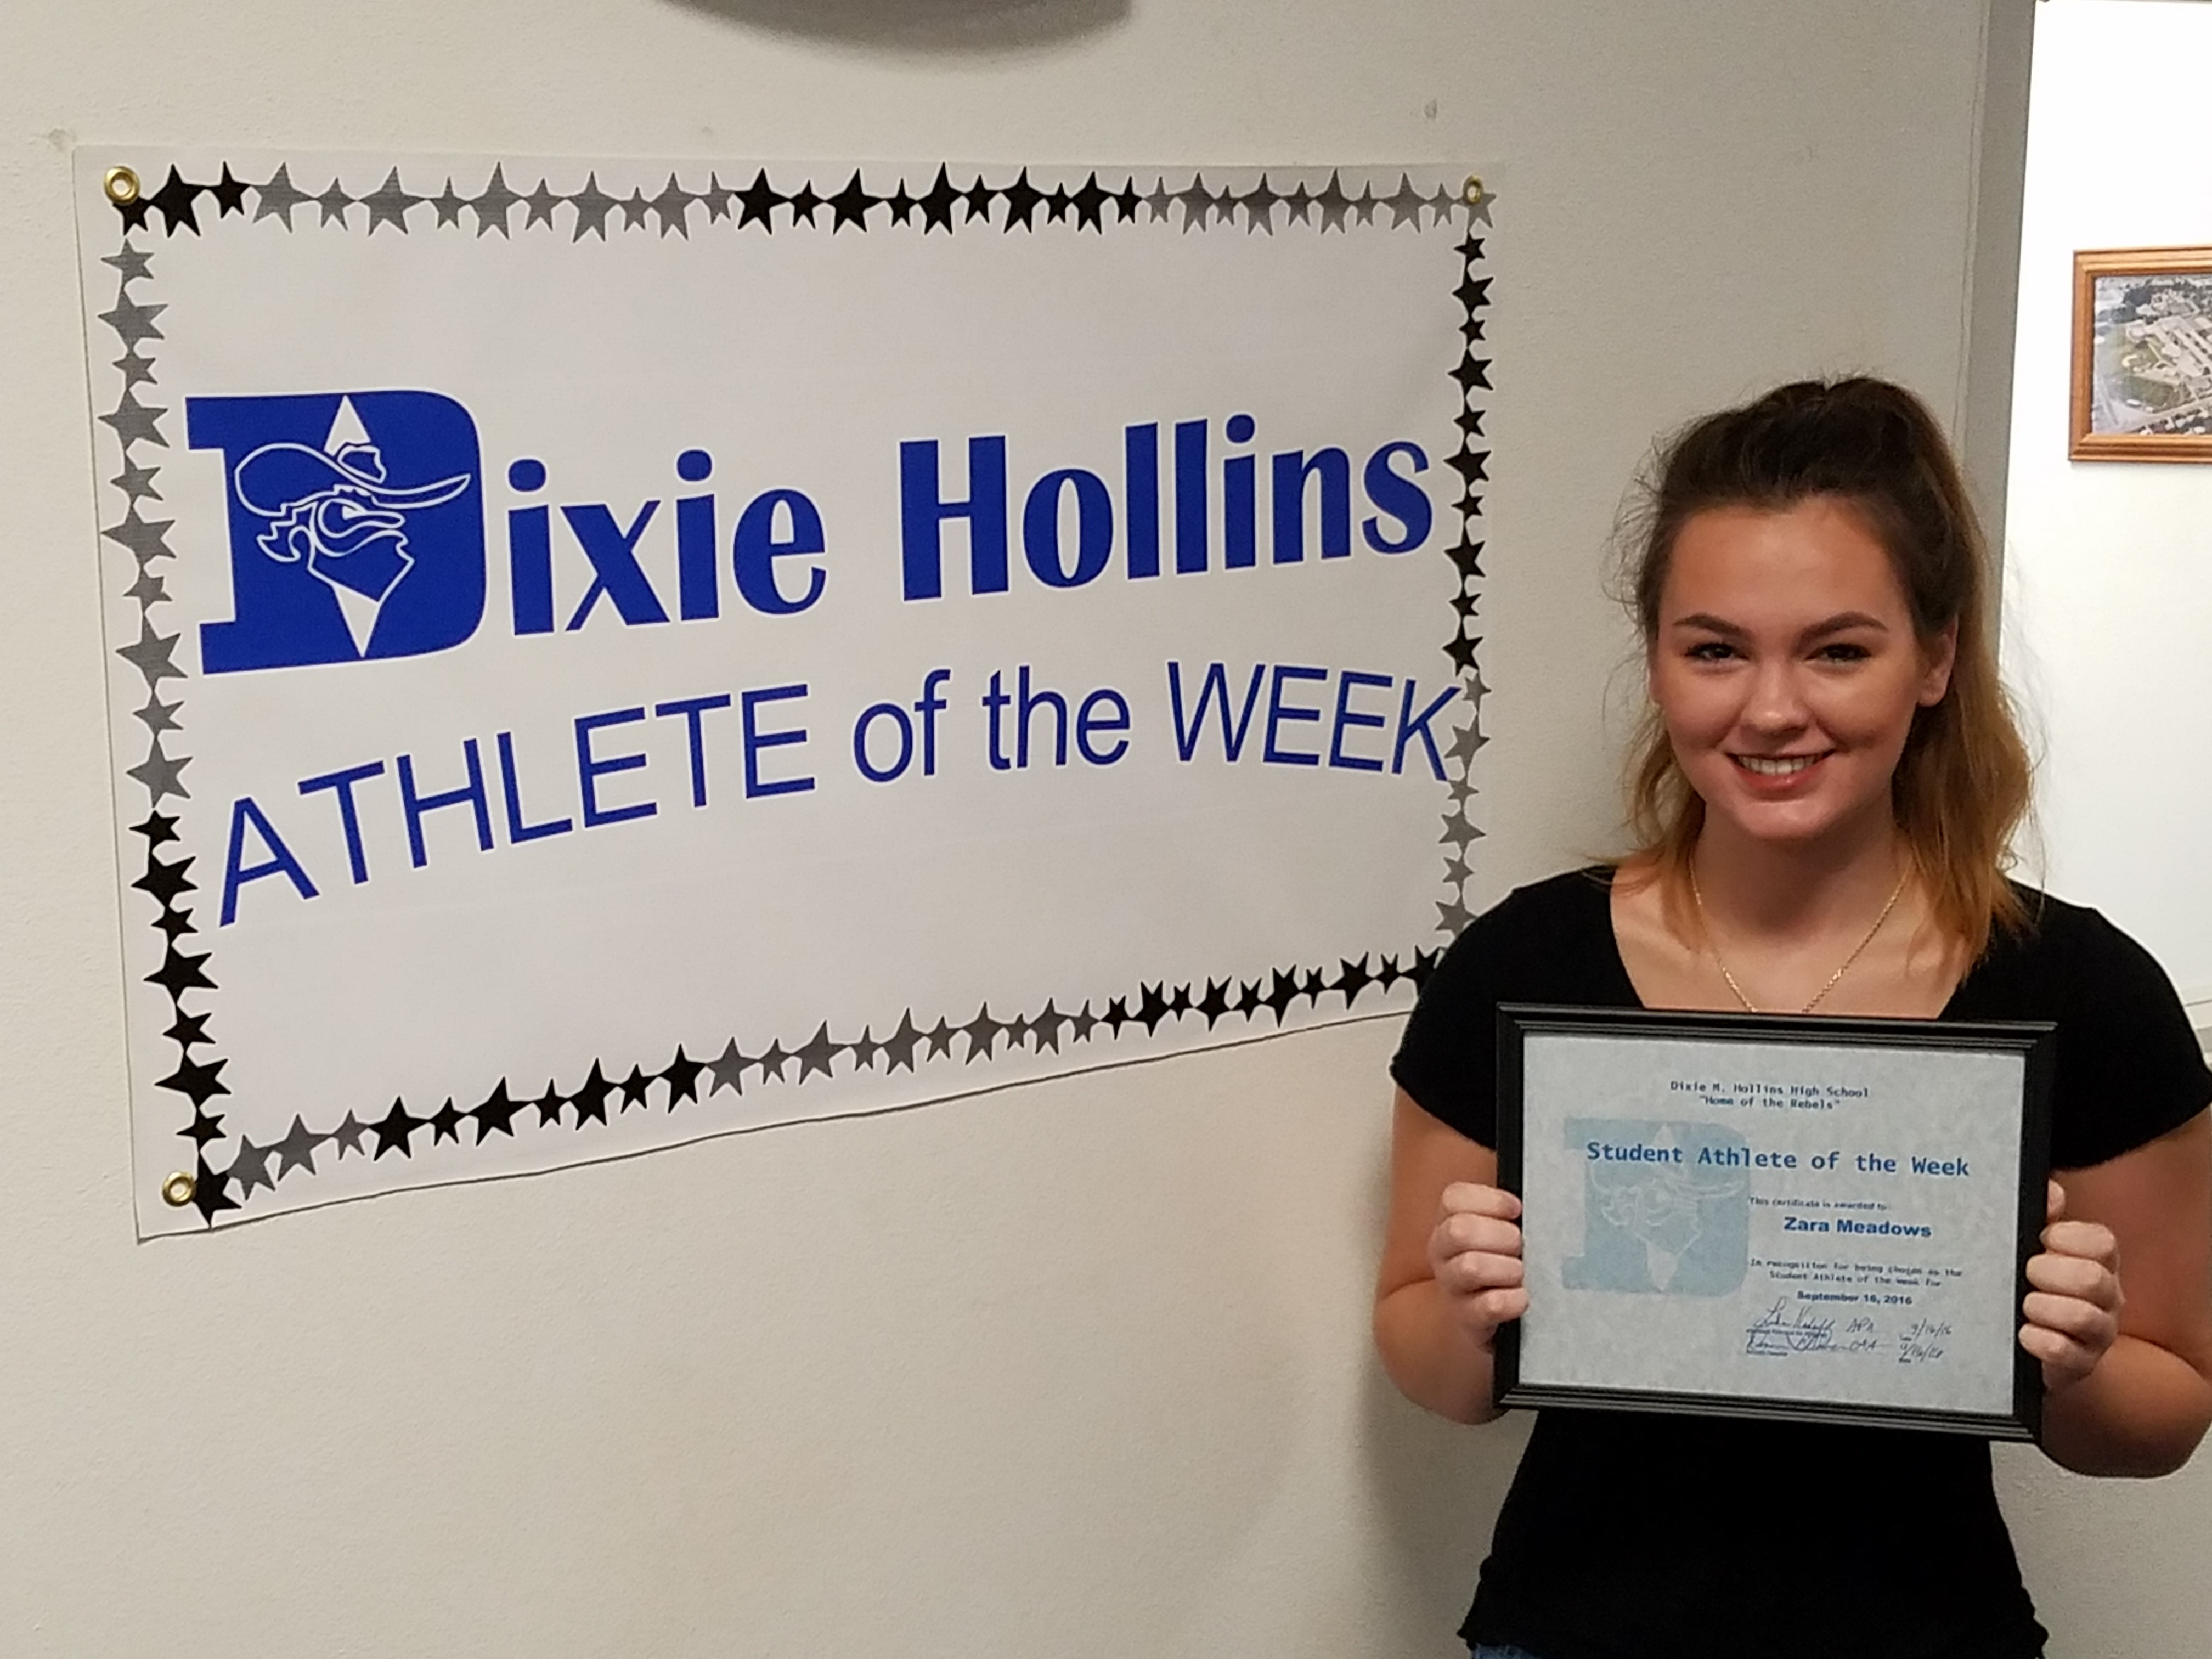 Zara Meadows-Athlete of the Week!